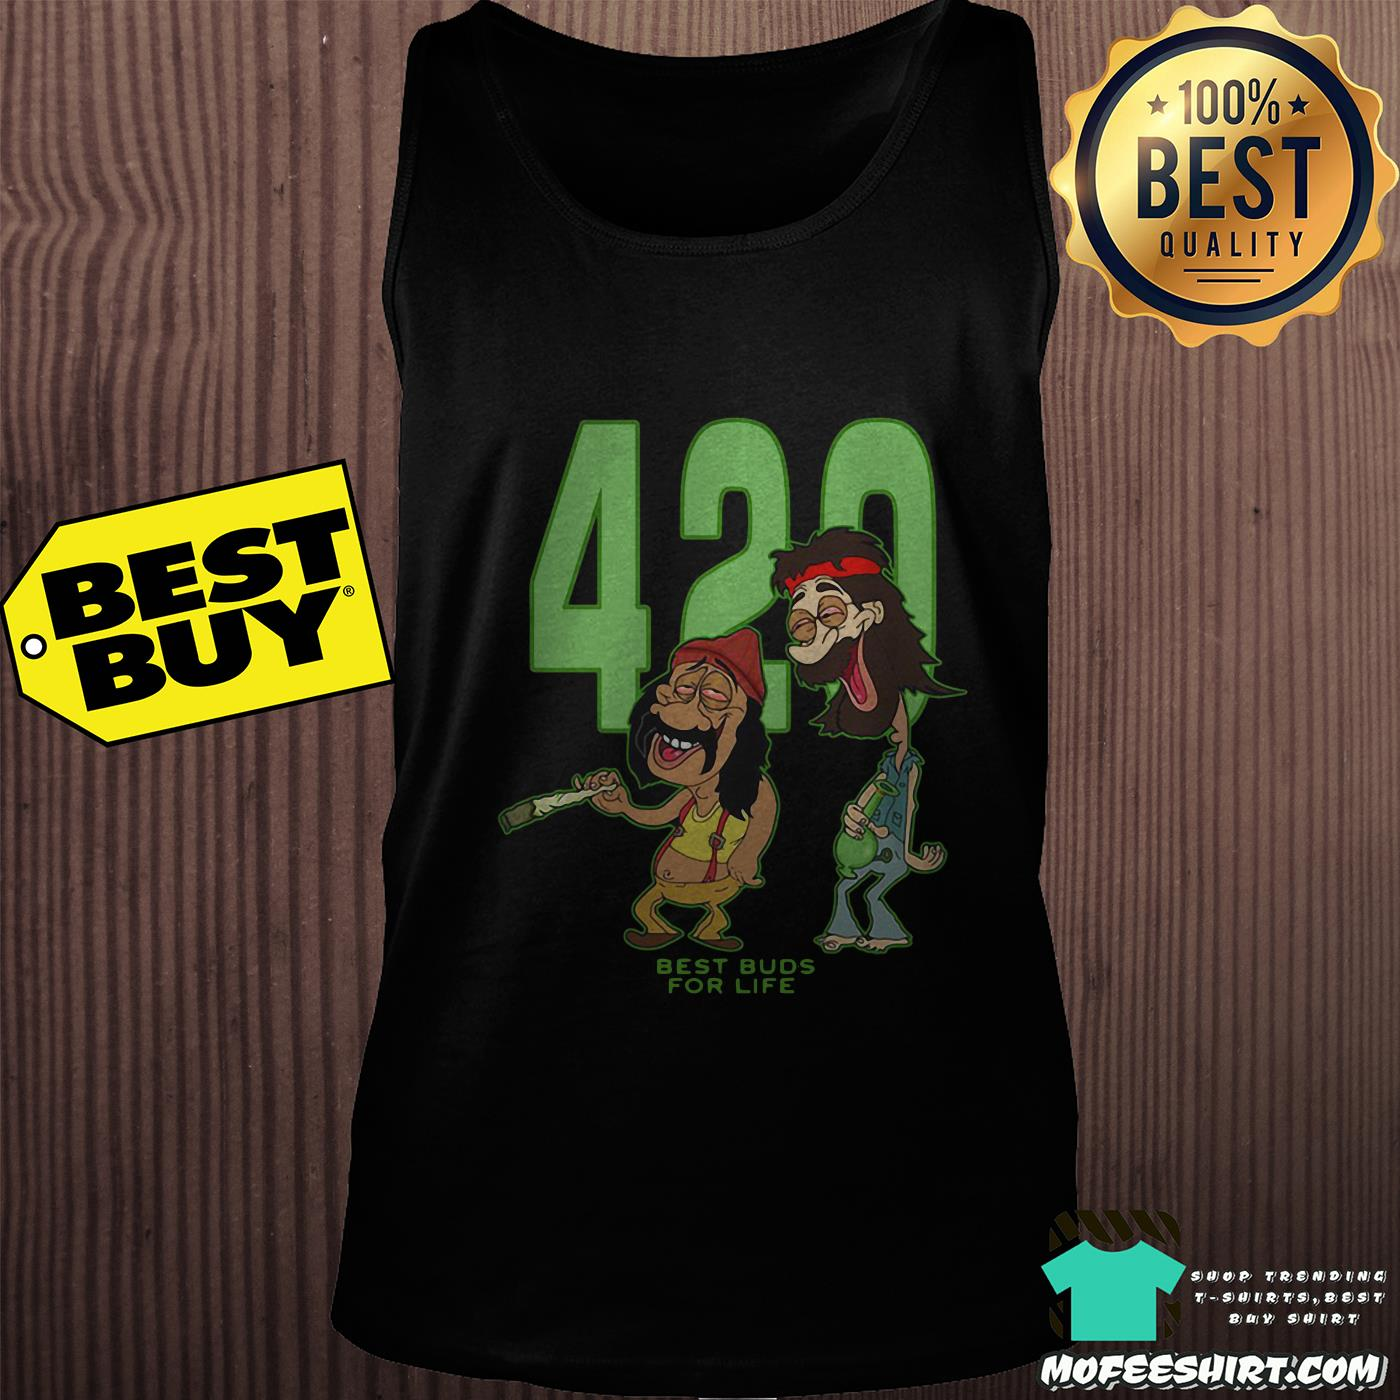 420 best buds for life tank top - 420 Best Buds For Life Shirt